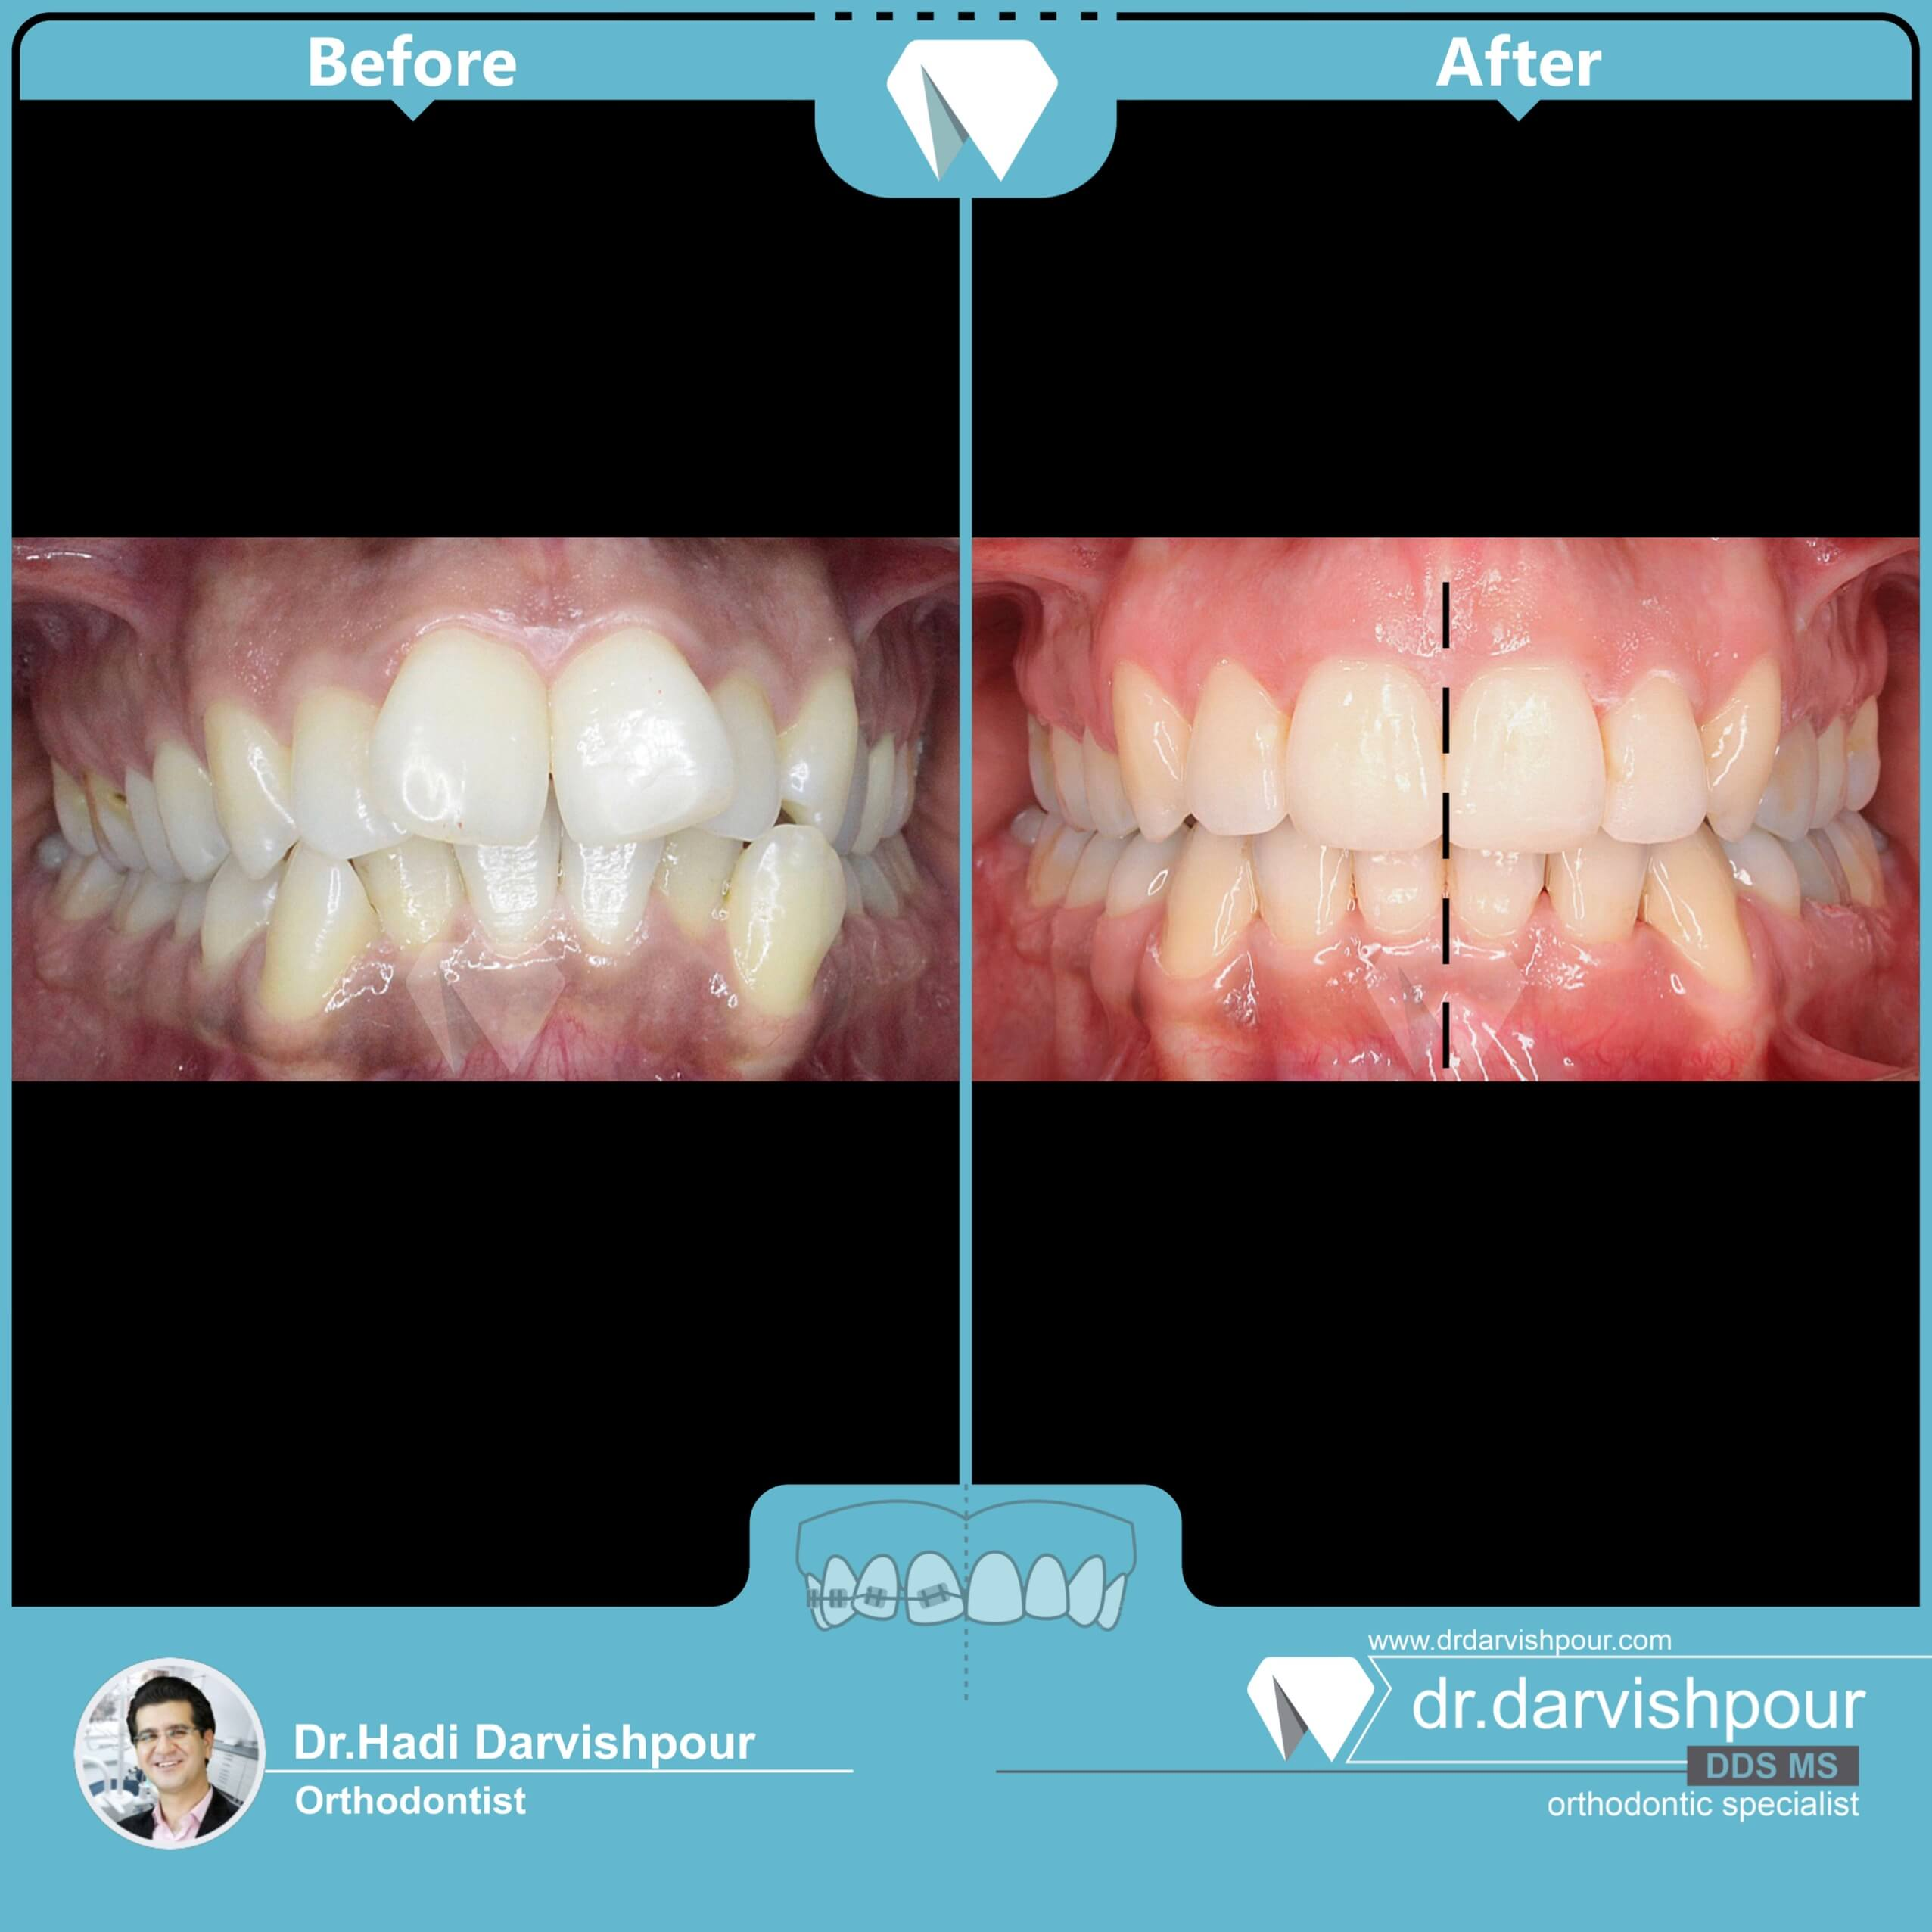 1744orthodontics-before-after-photo